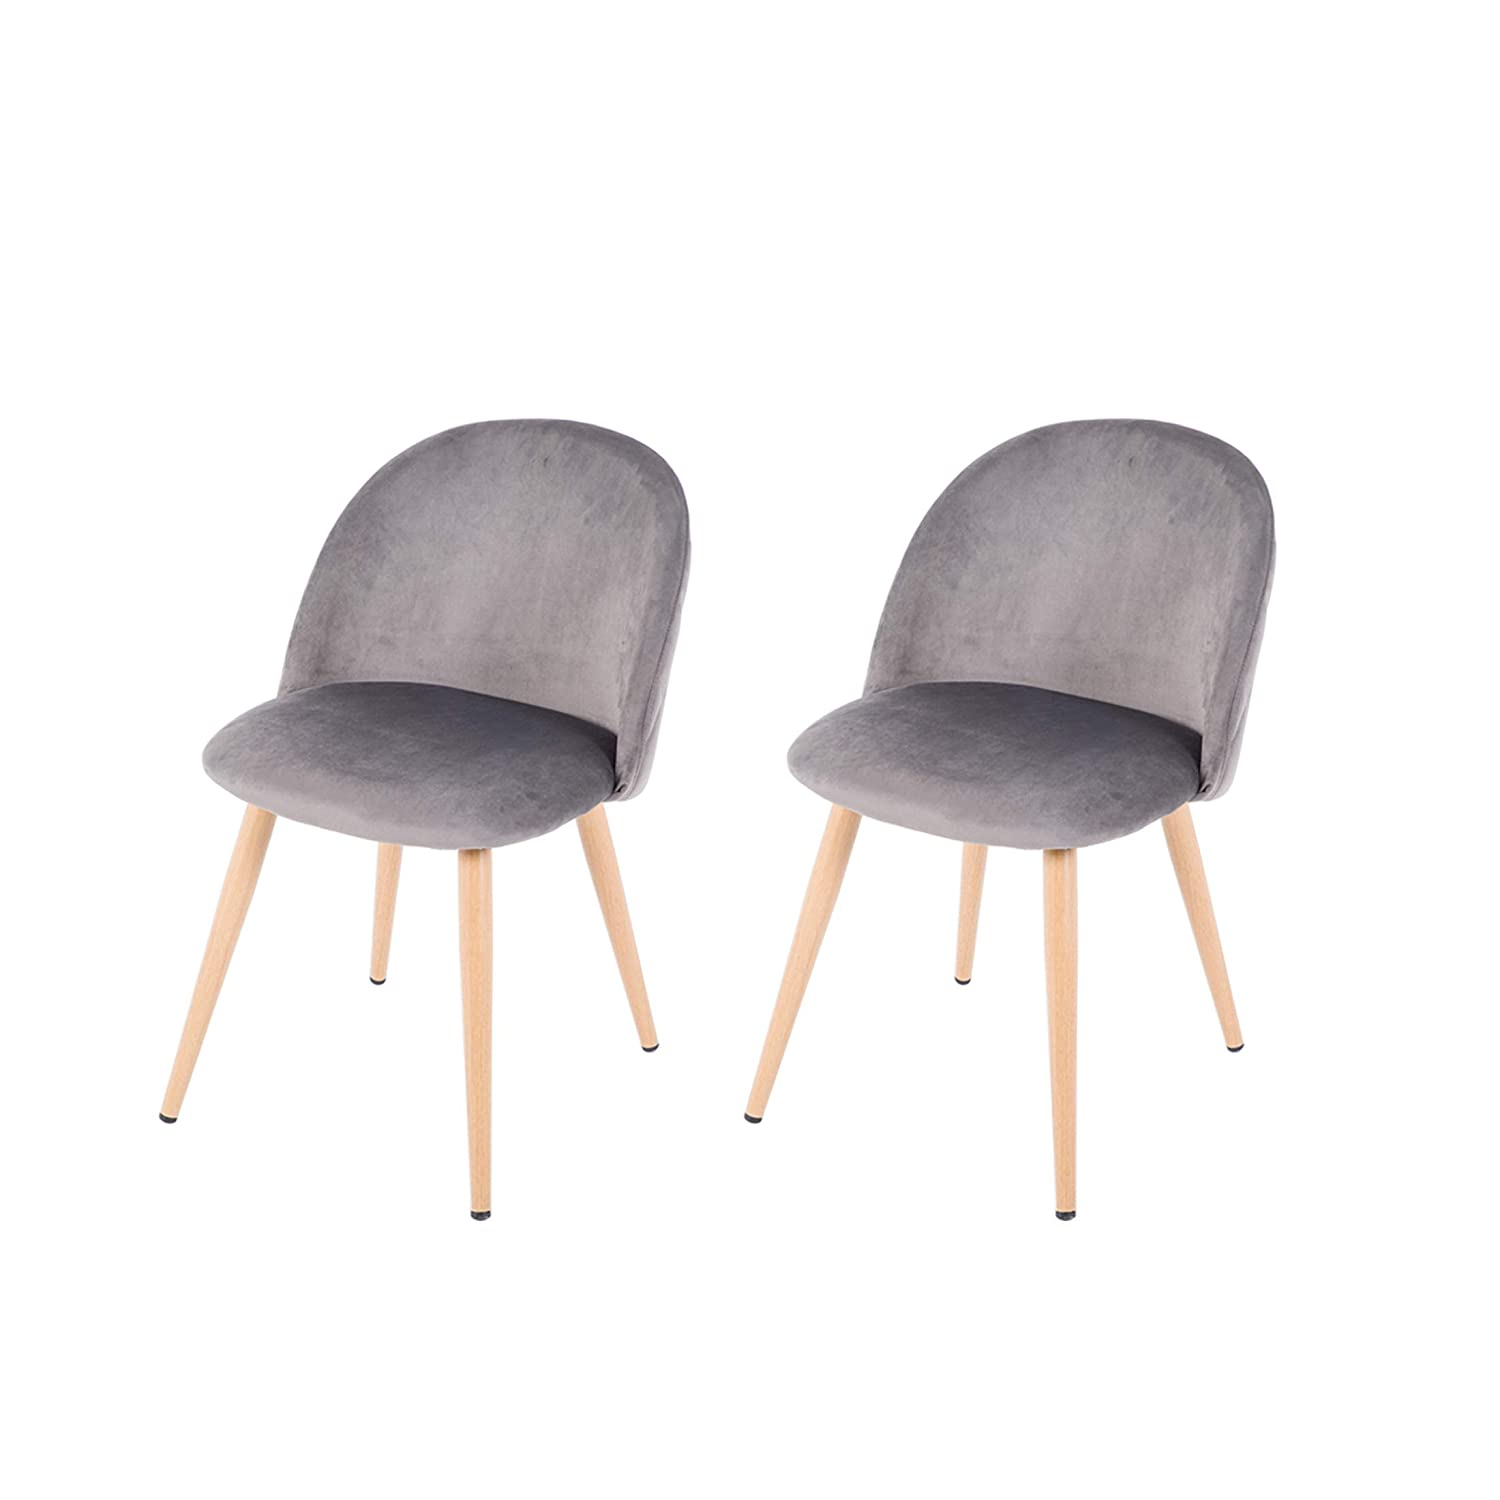 NOBPEINT Dining Leisure Chair Velvet Cushion Seat, Set of 2 Gray